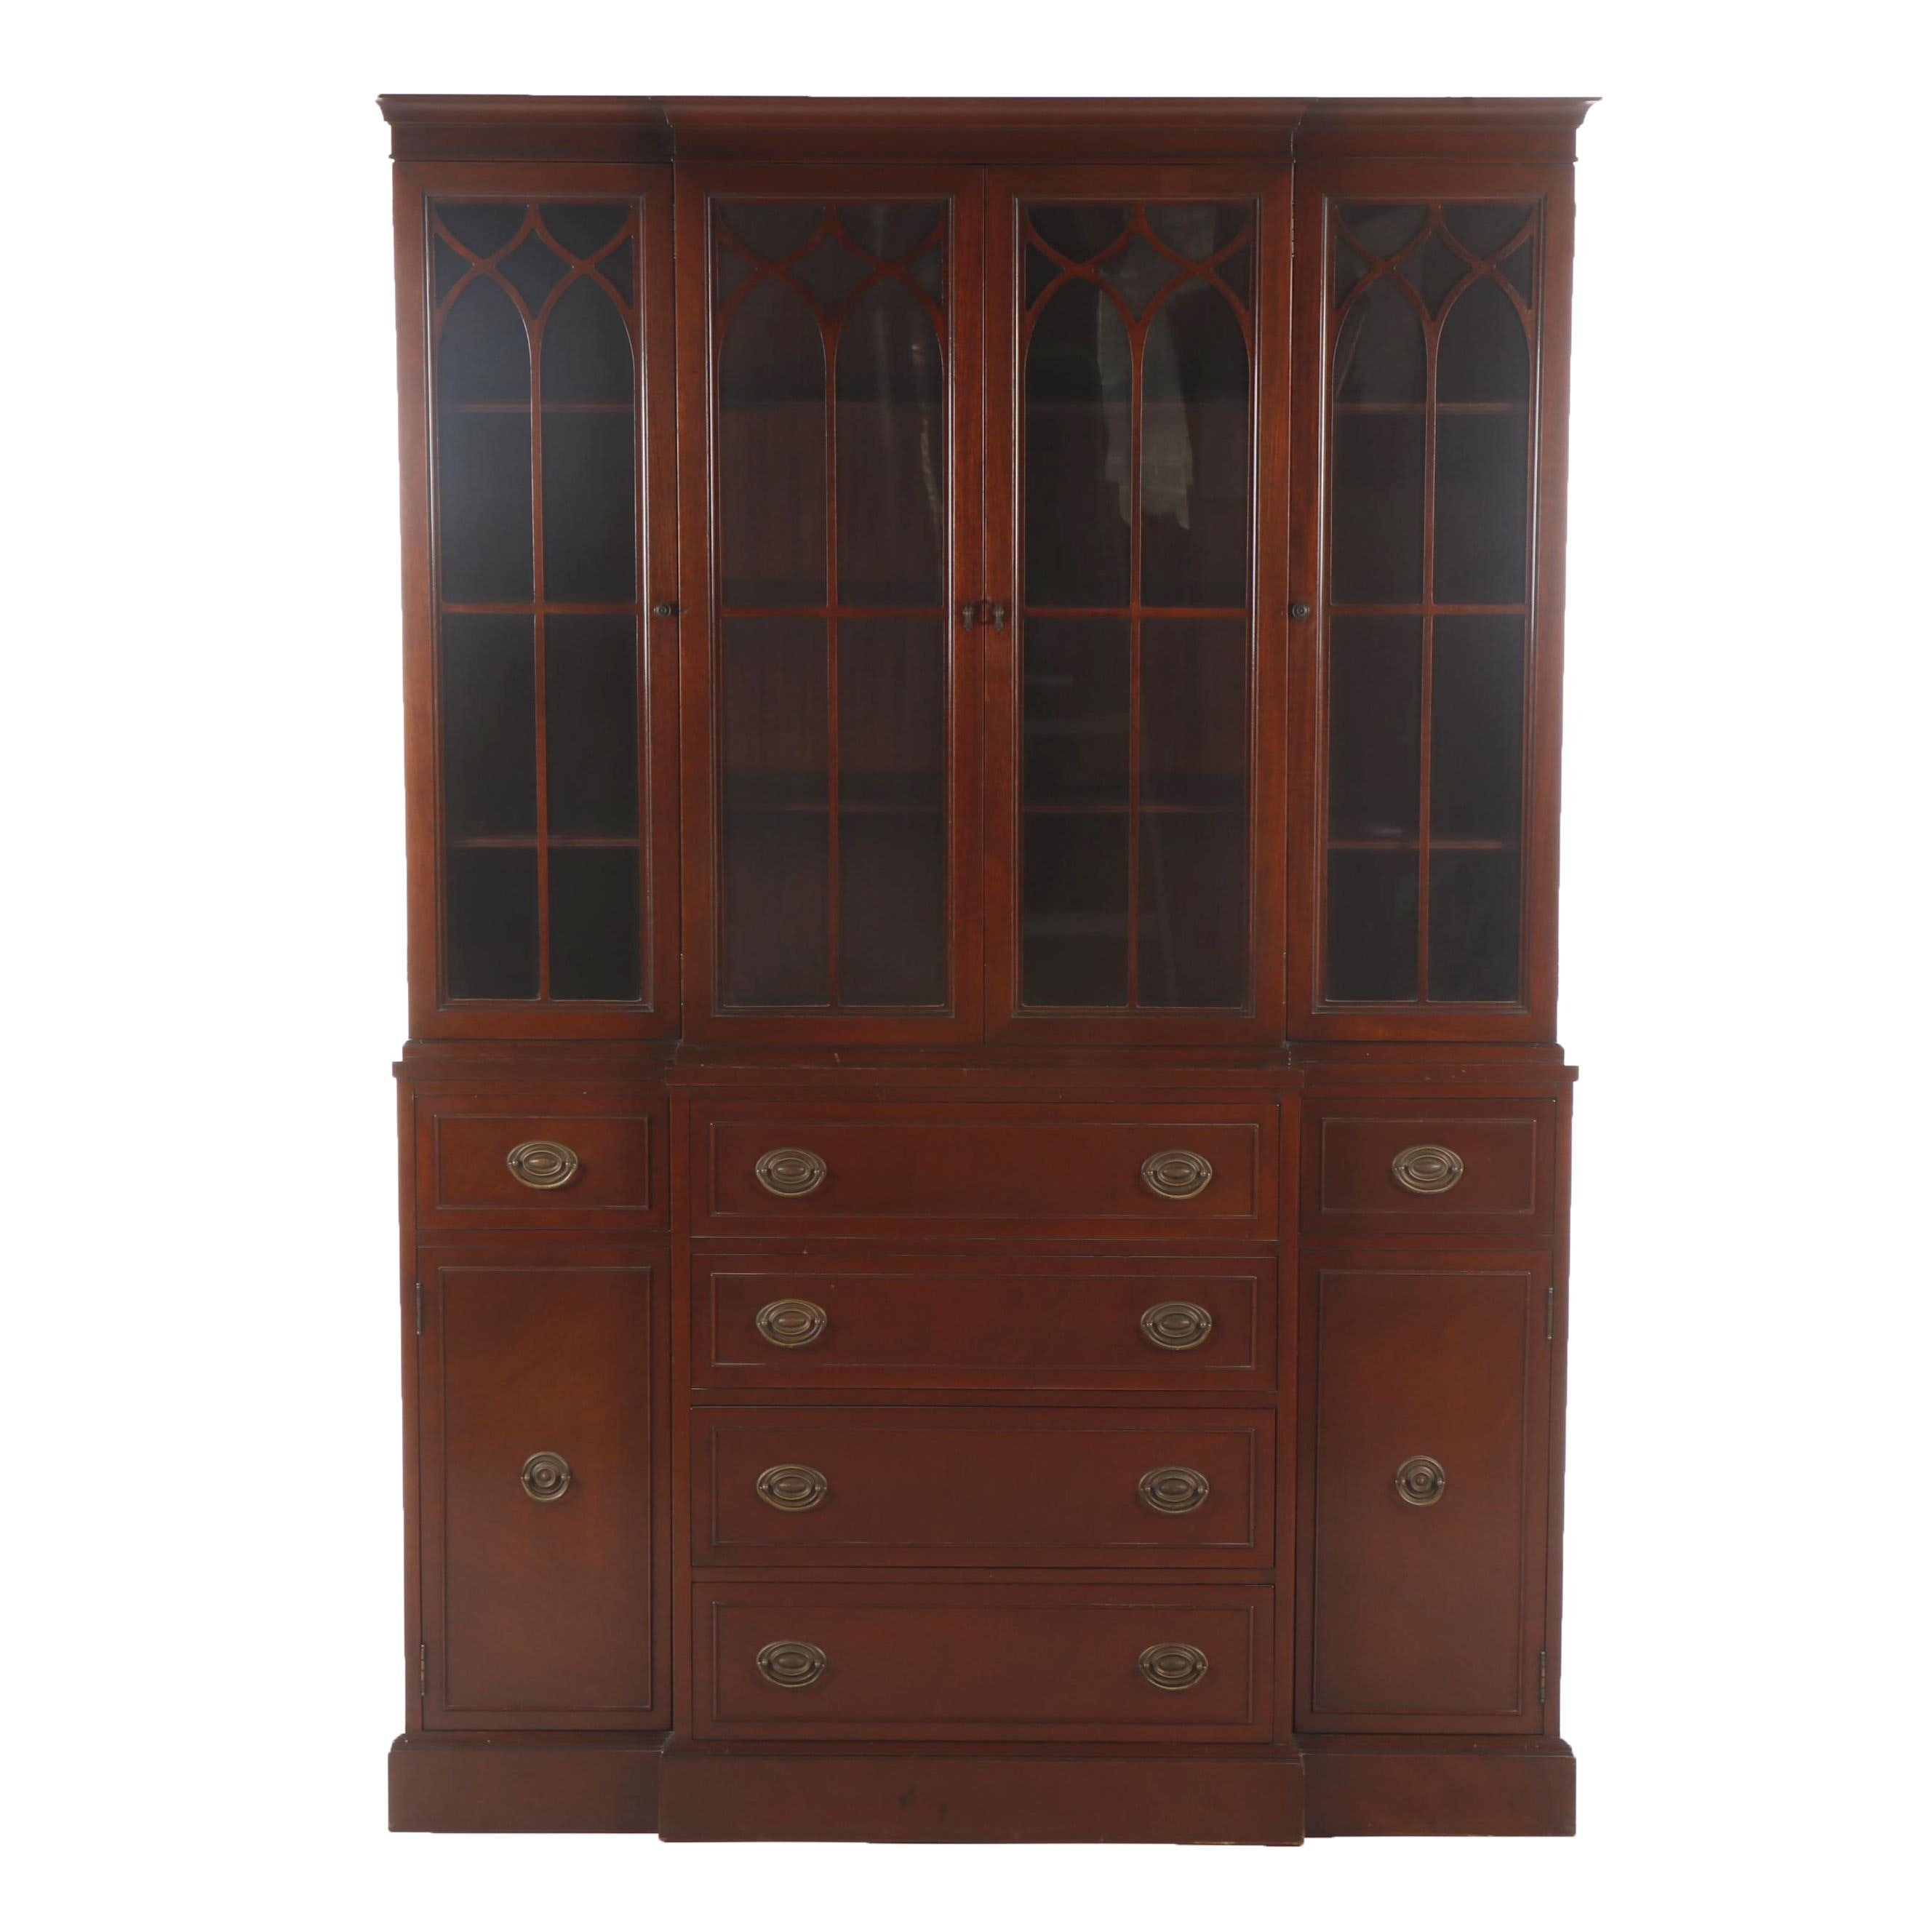 Rway Federal Style Mahogany Drop Front Secretary Desk with Cabinet